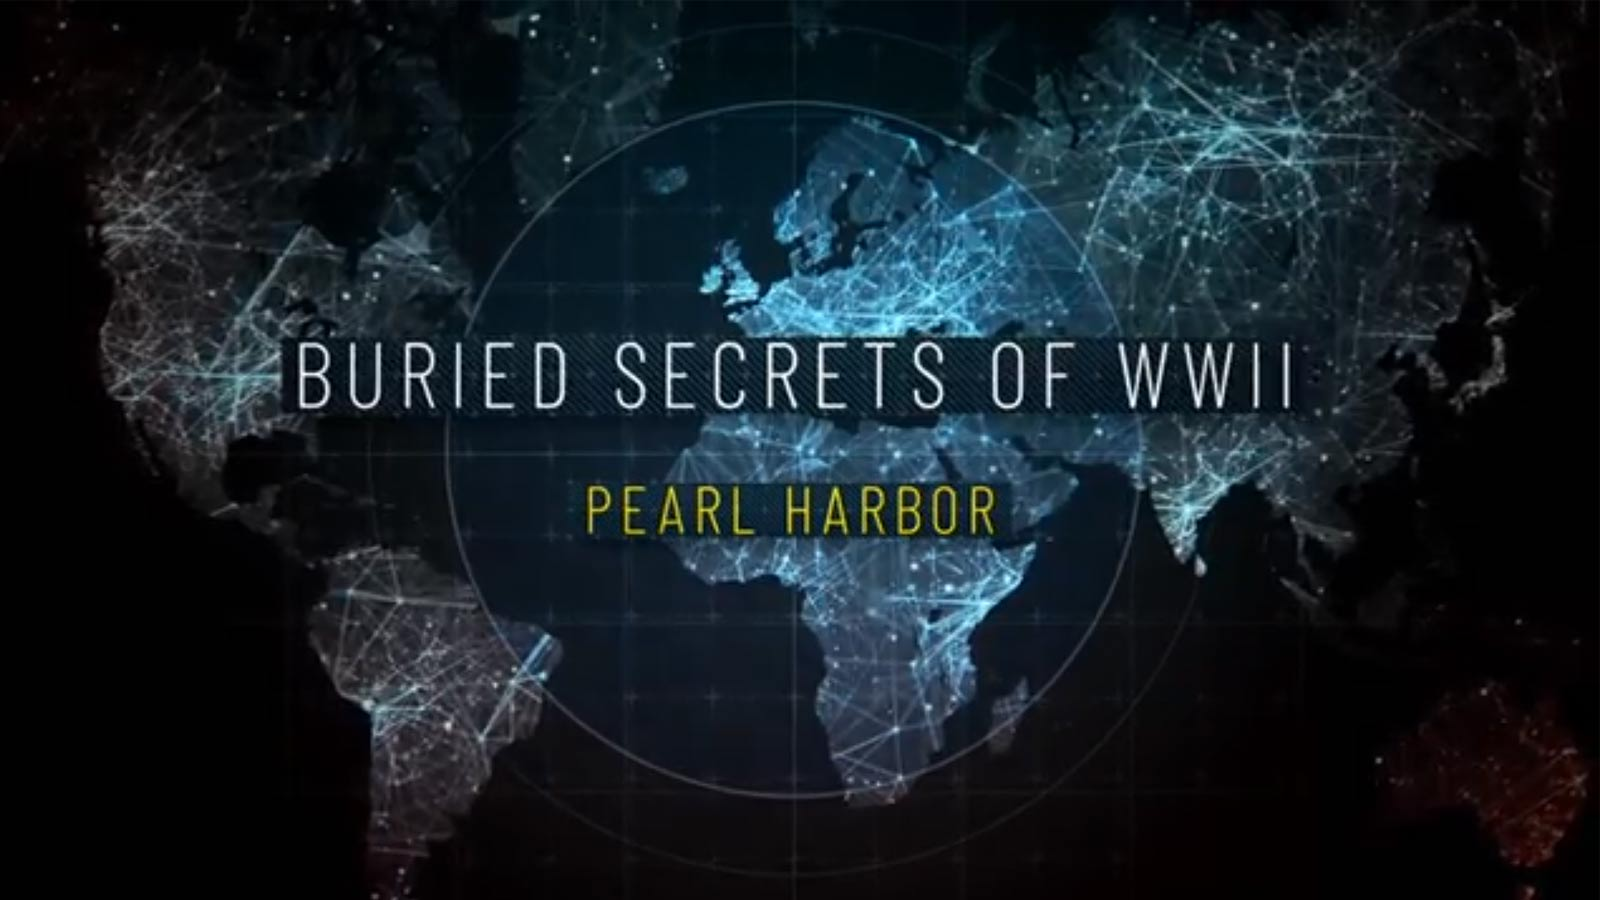 Buried-Secrets-of-WWII---Pearl-Habour